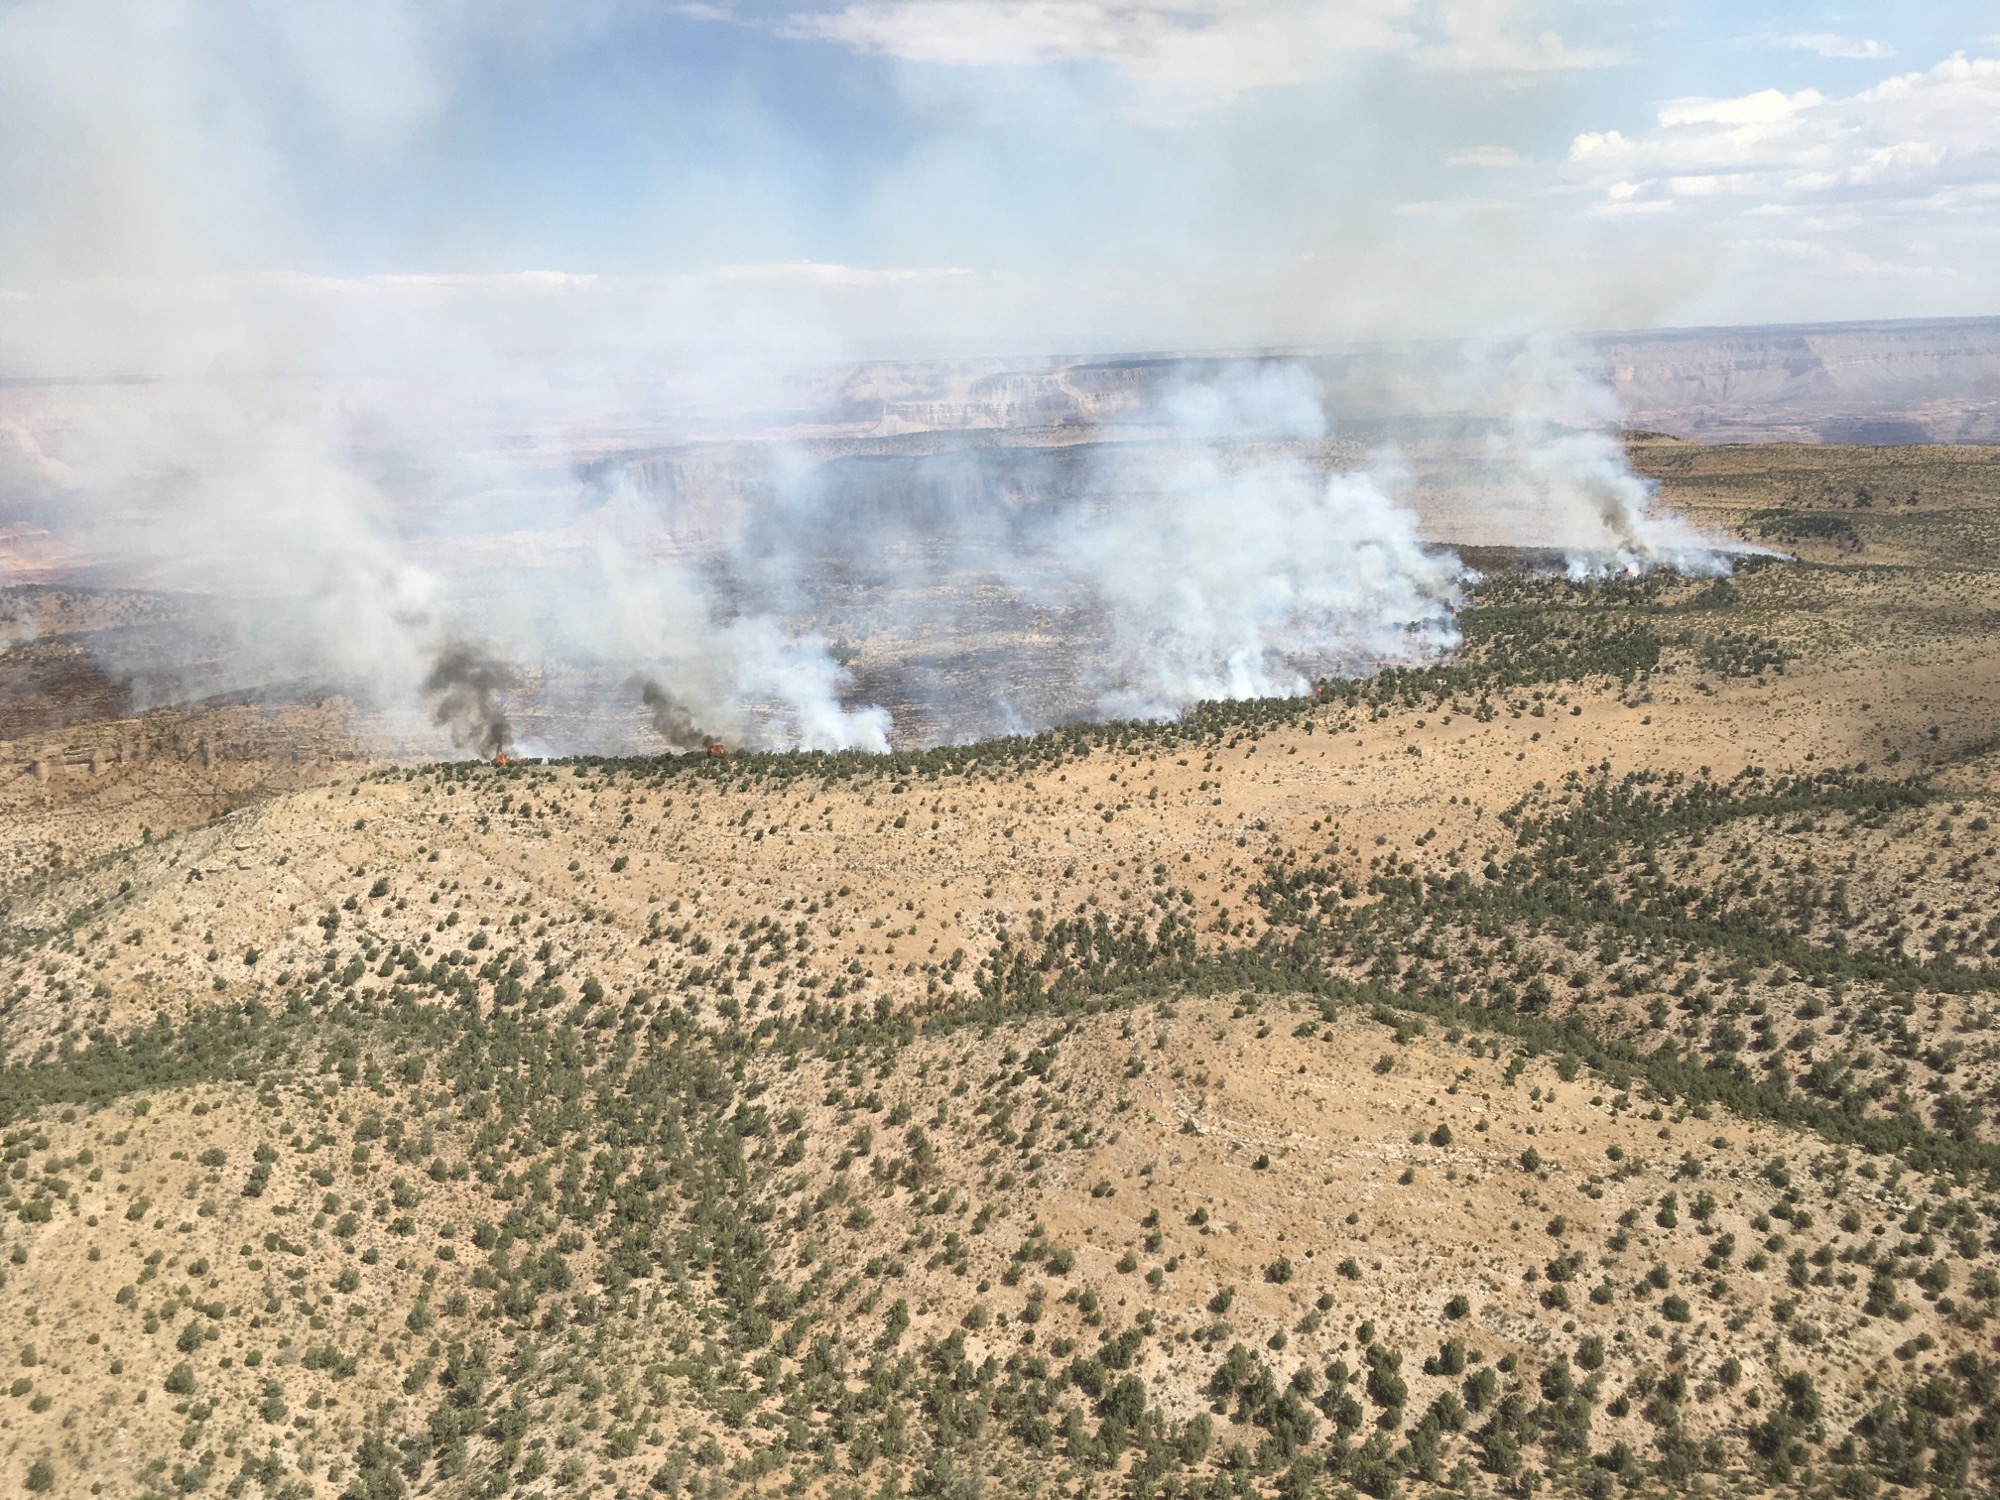 Aerial view of fire along rim of canyon.